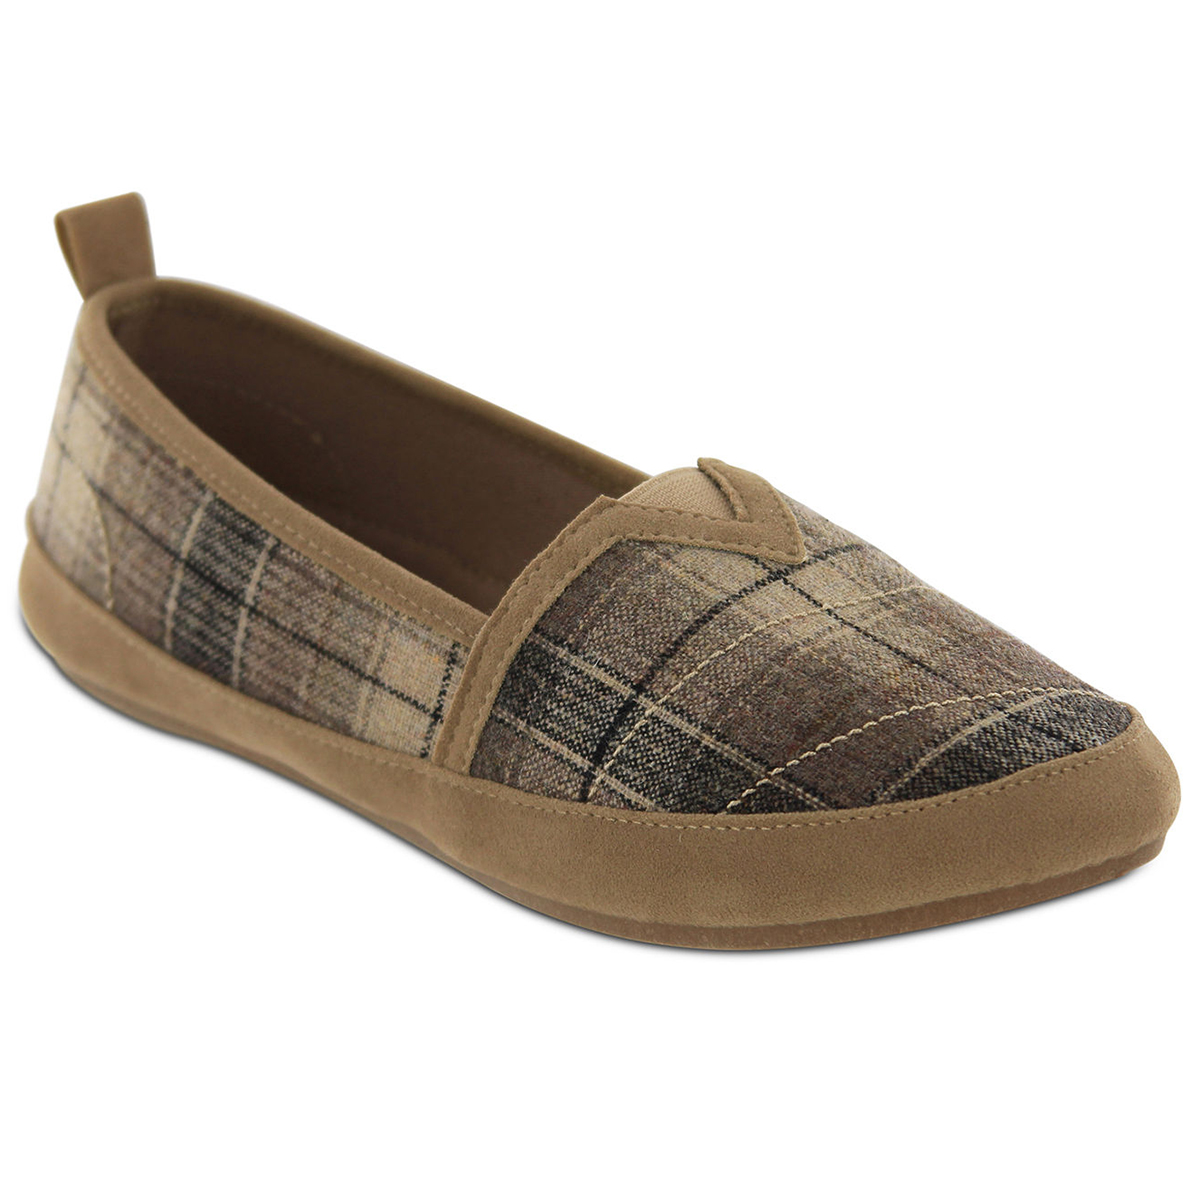 MIA Women's Adri Plaid Slip-On Casual Shoes - Brown, 7.5